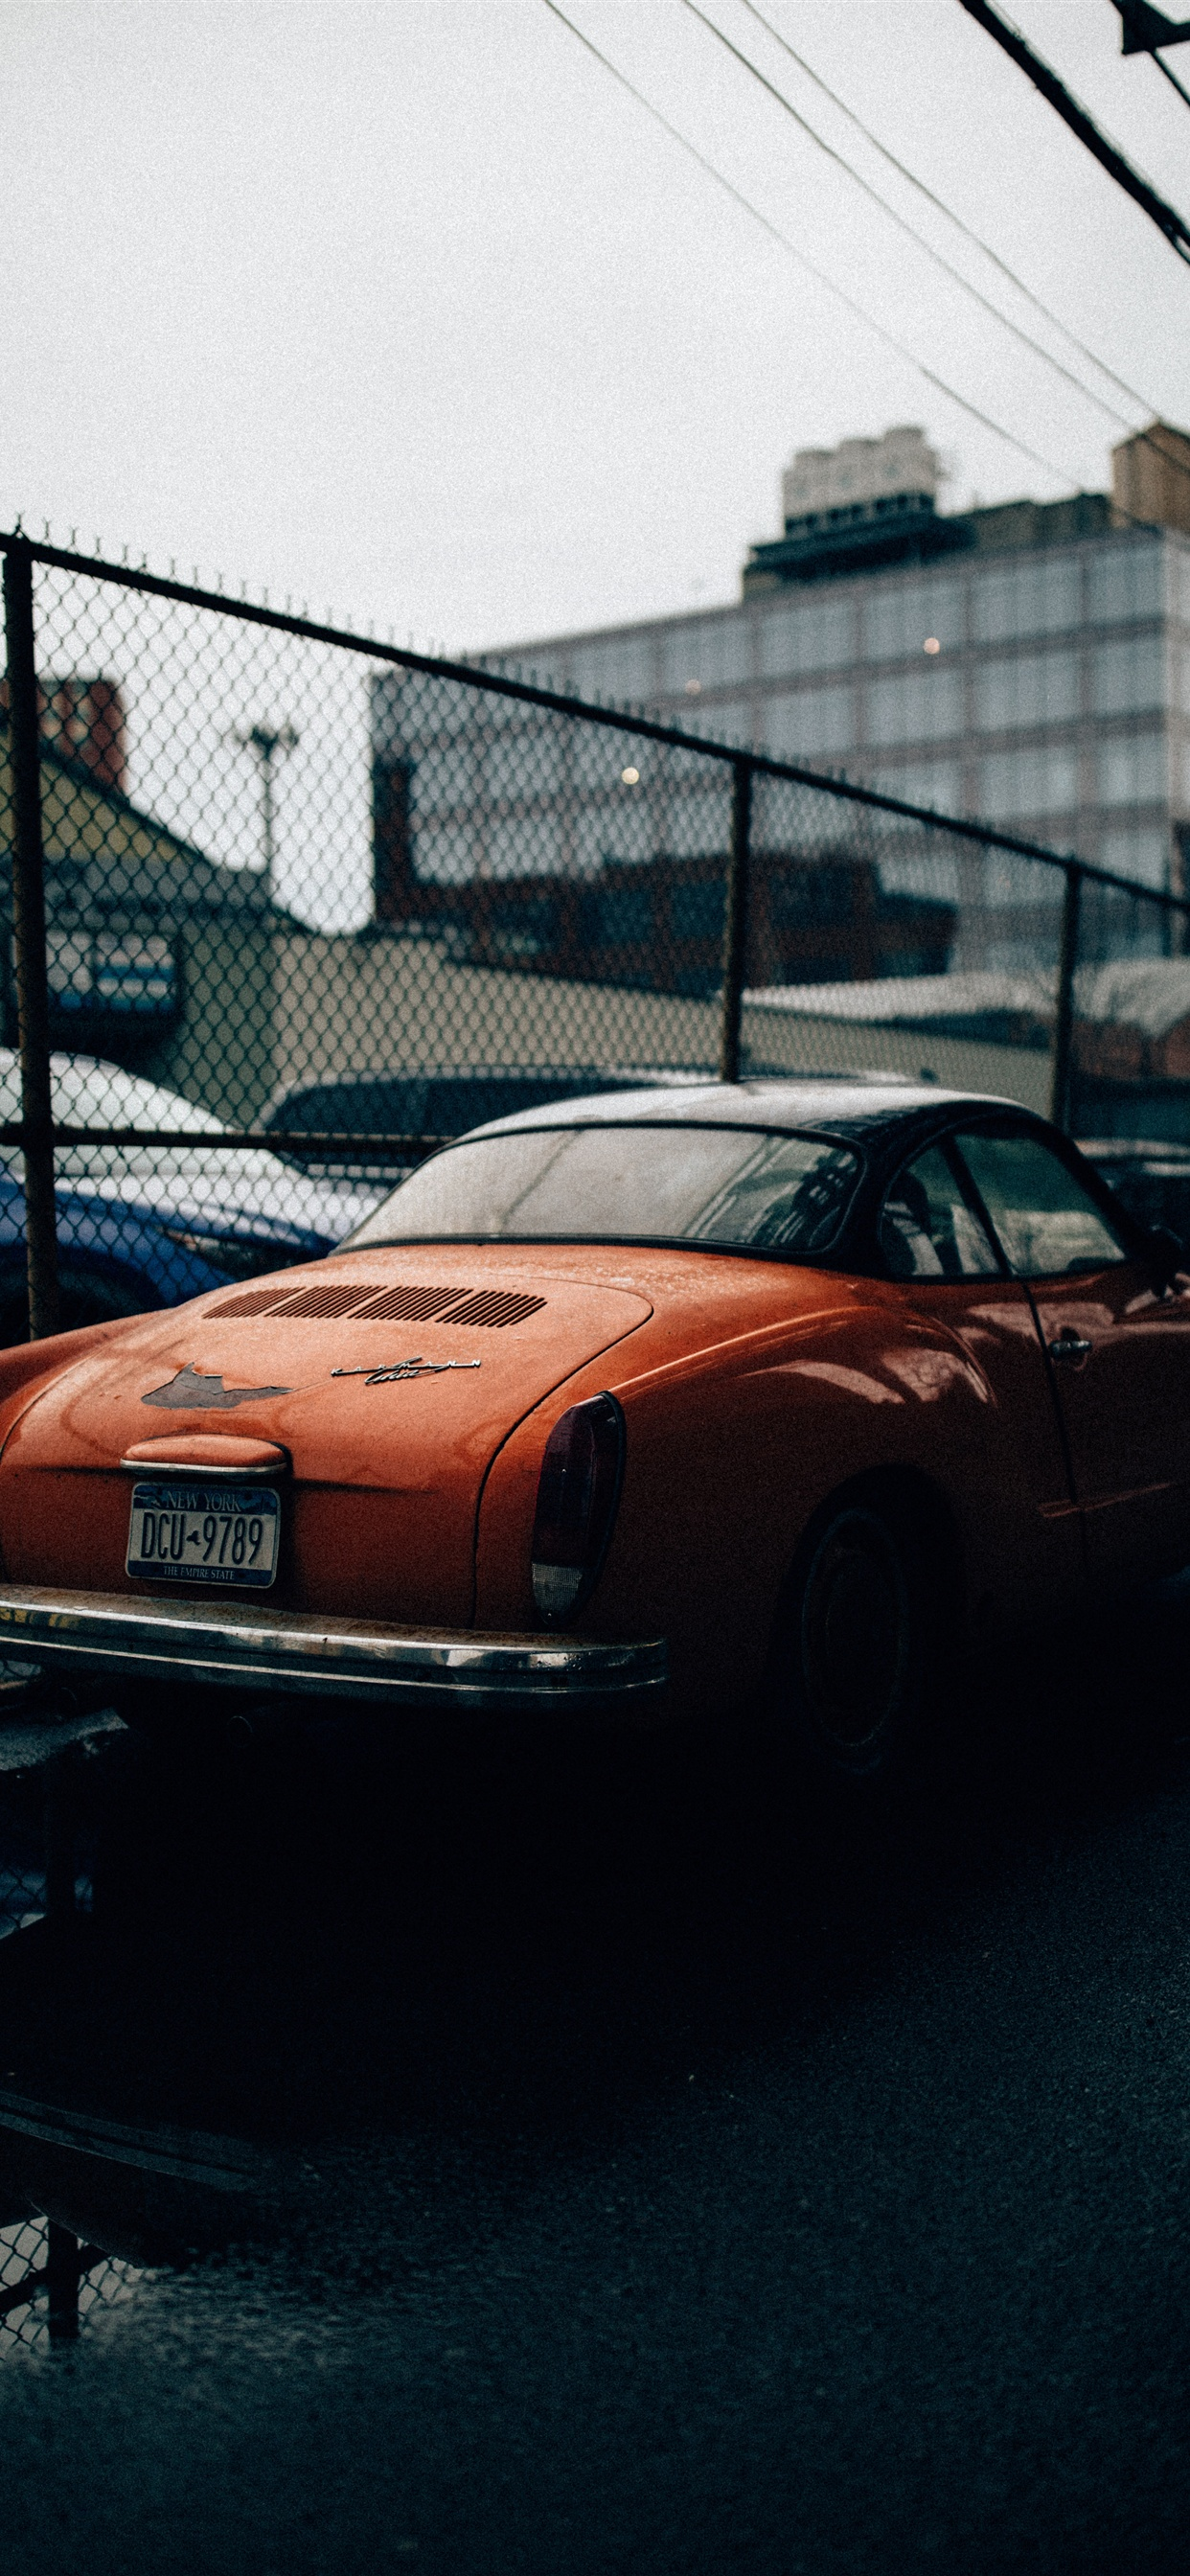 Orange Old Car Fence Iphone Xs Max X 8 7 6 5 4 3gs Wallpaper